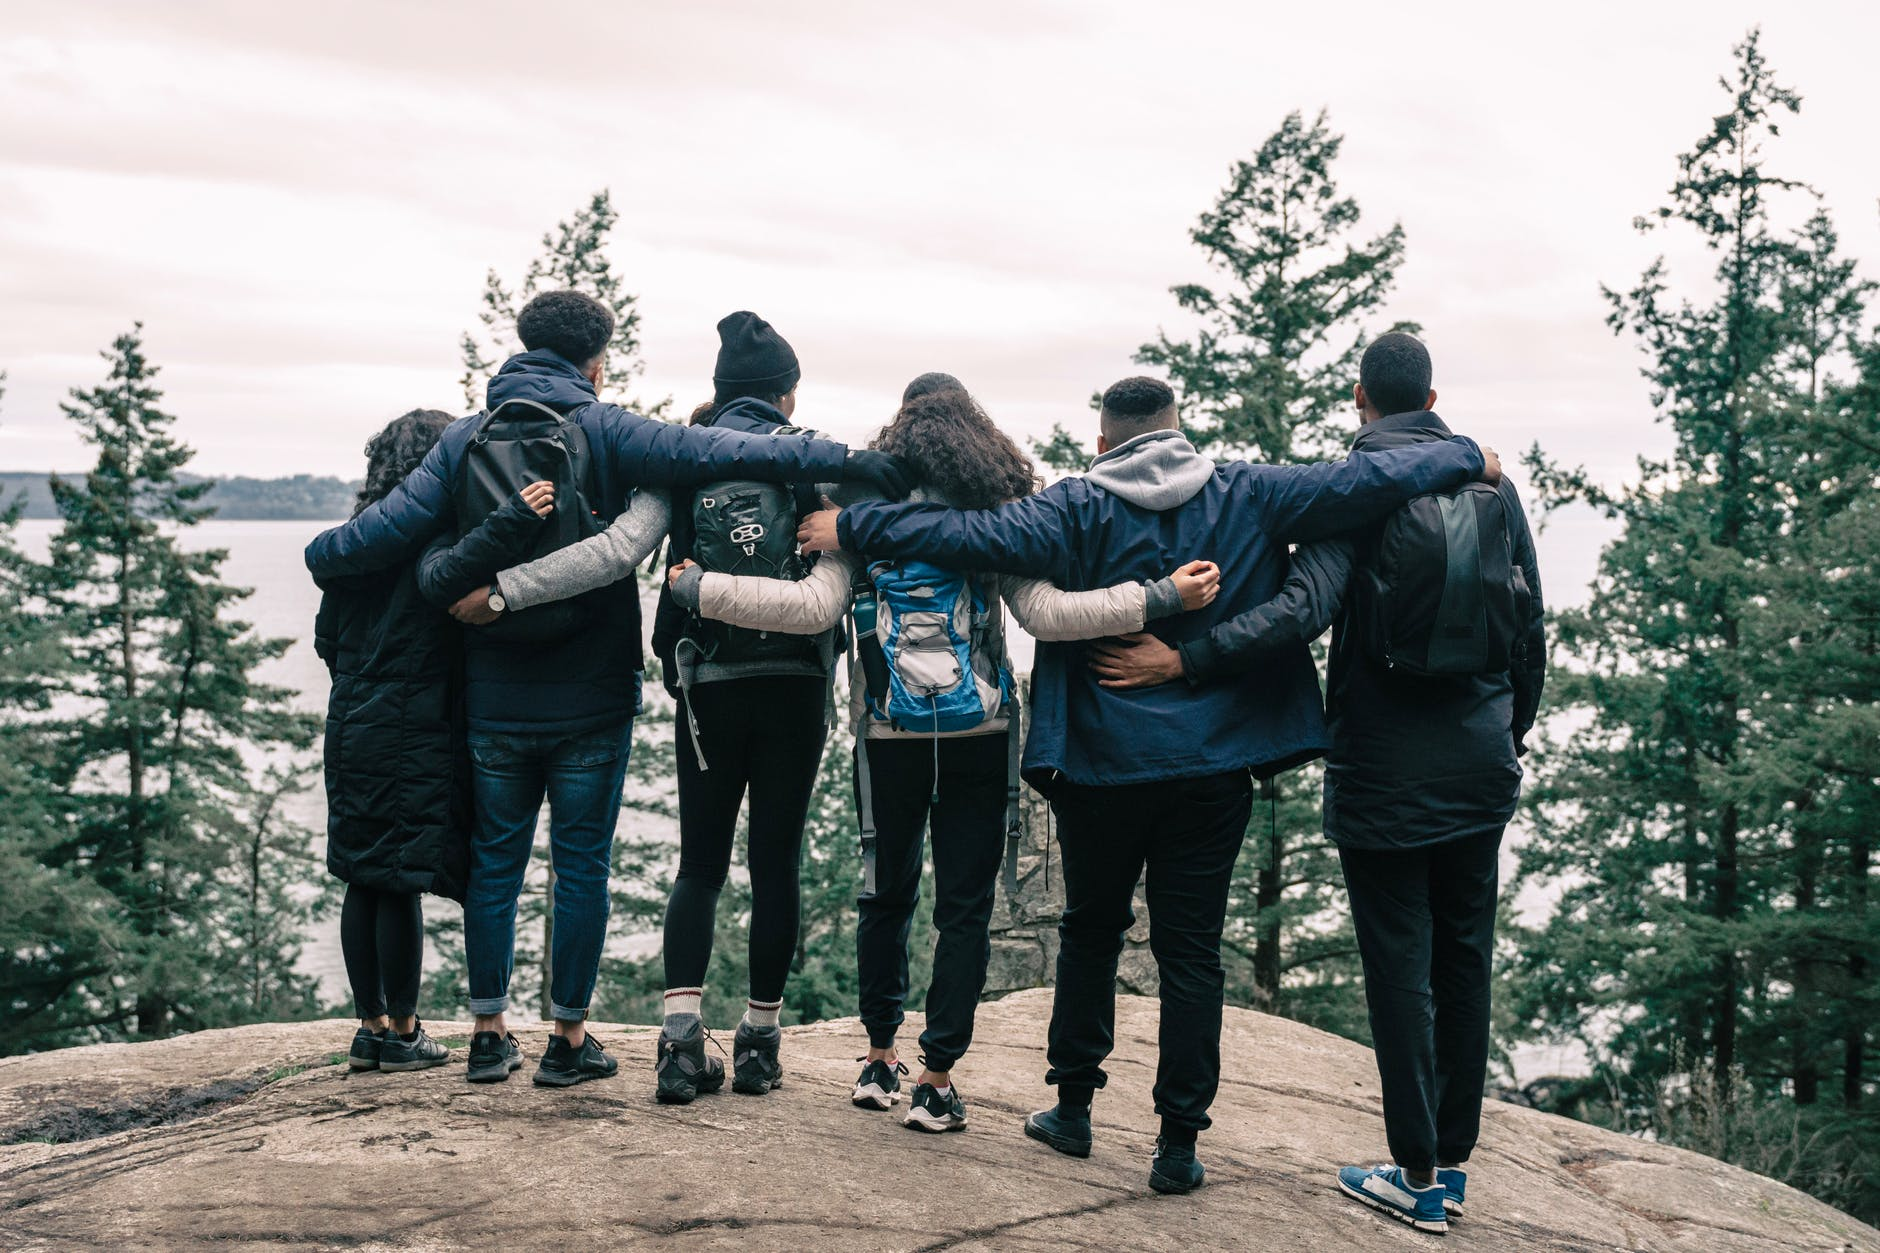 A group of friends stand on the edge of a forest, with their arms around each other. They have their backs to the camera